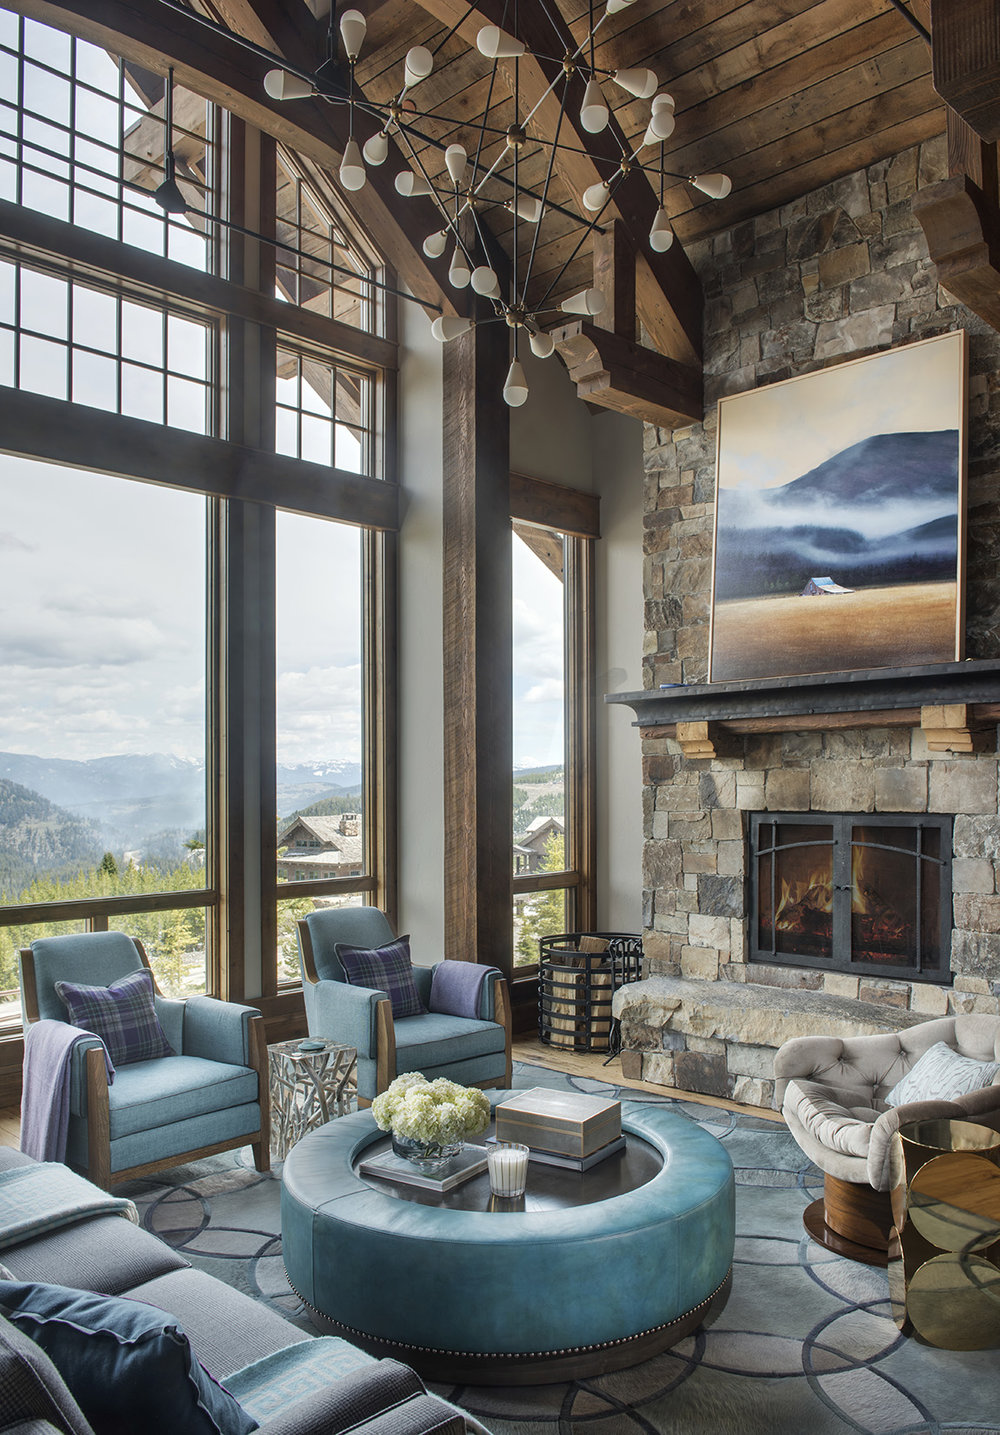 The vaulted ceilings, large open windows, and teal furnishings are what make me love this great room.   Teal is also my favorite color!  Architect -  Locati Architects , Interior Design -  Kelly Hohla Interiors